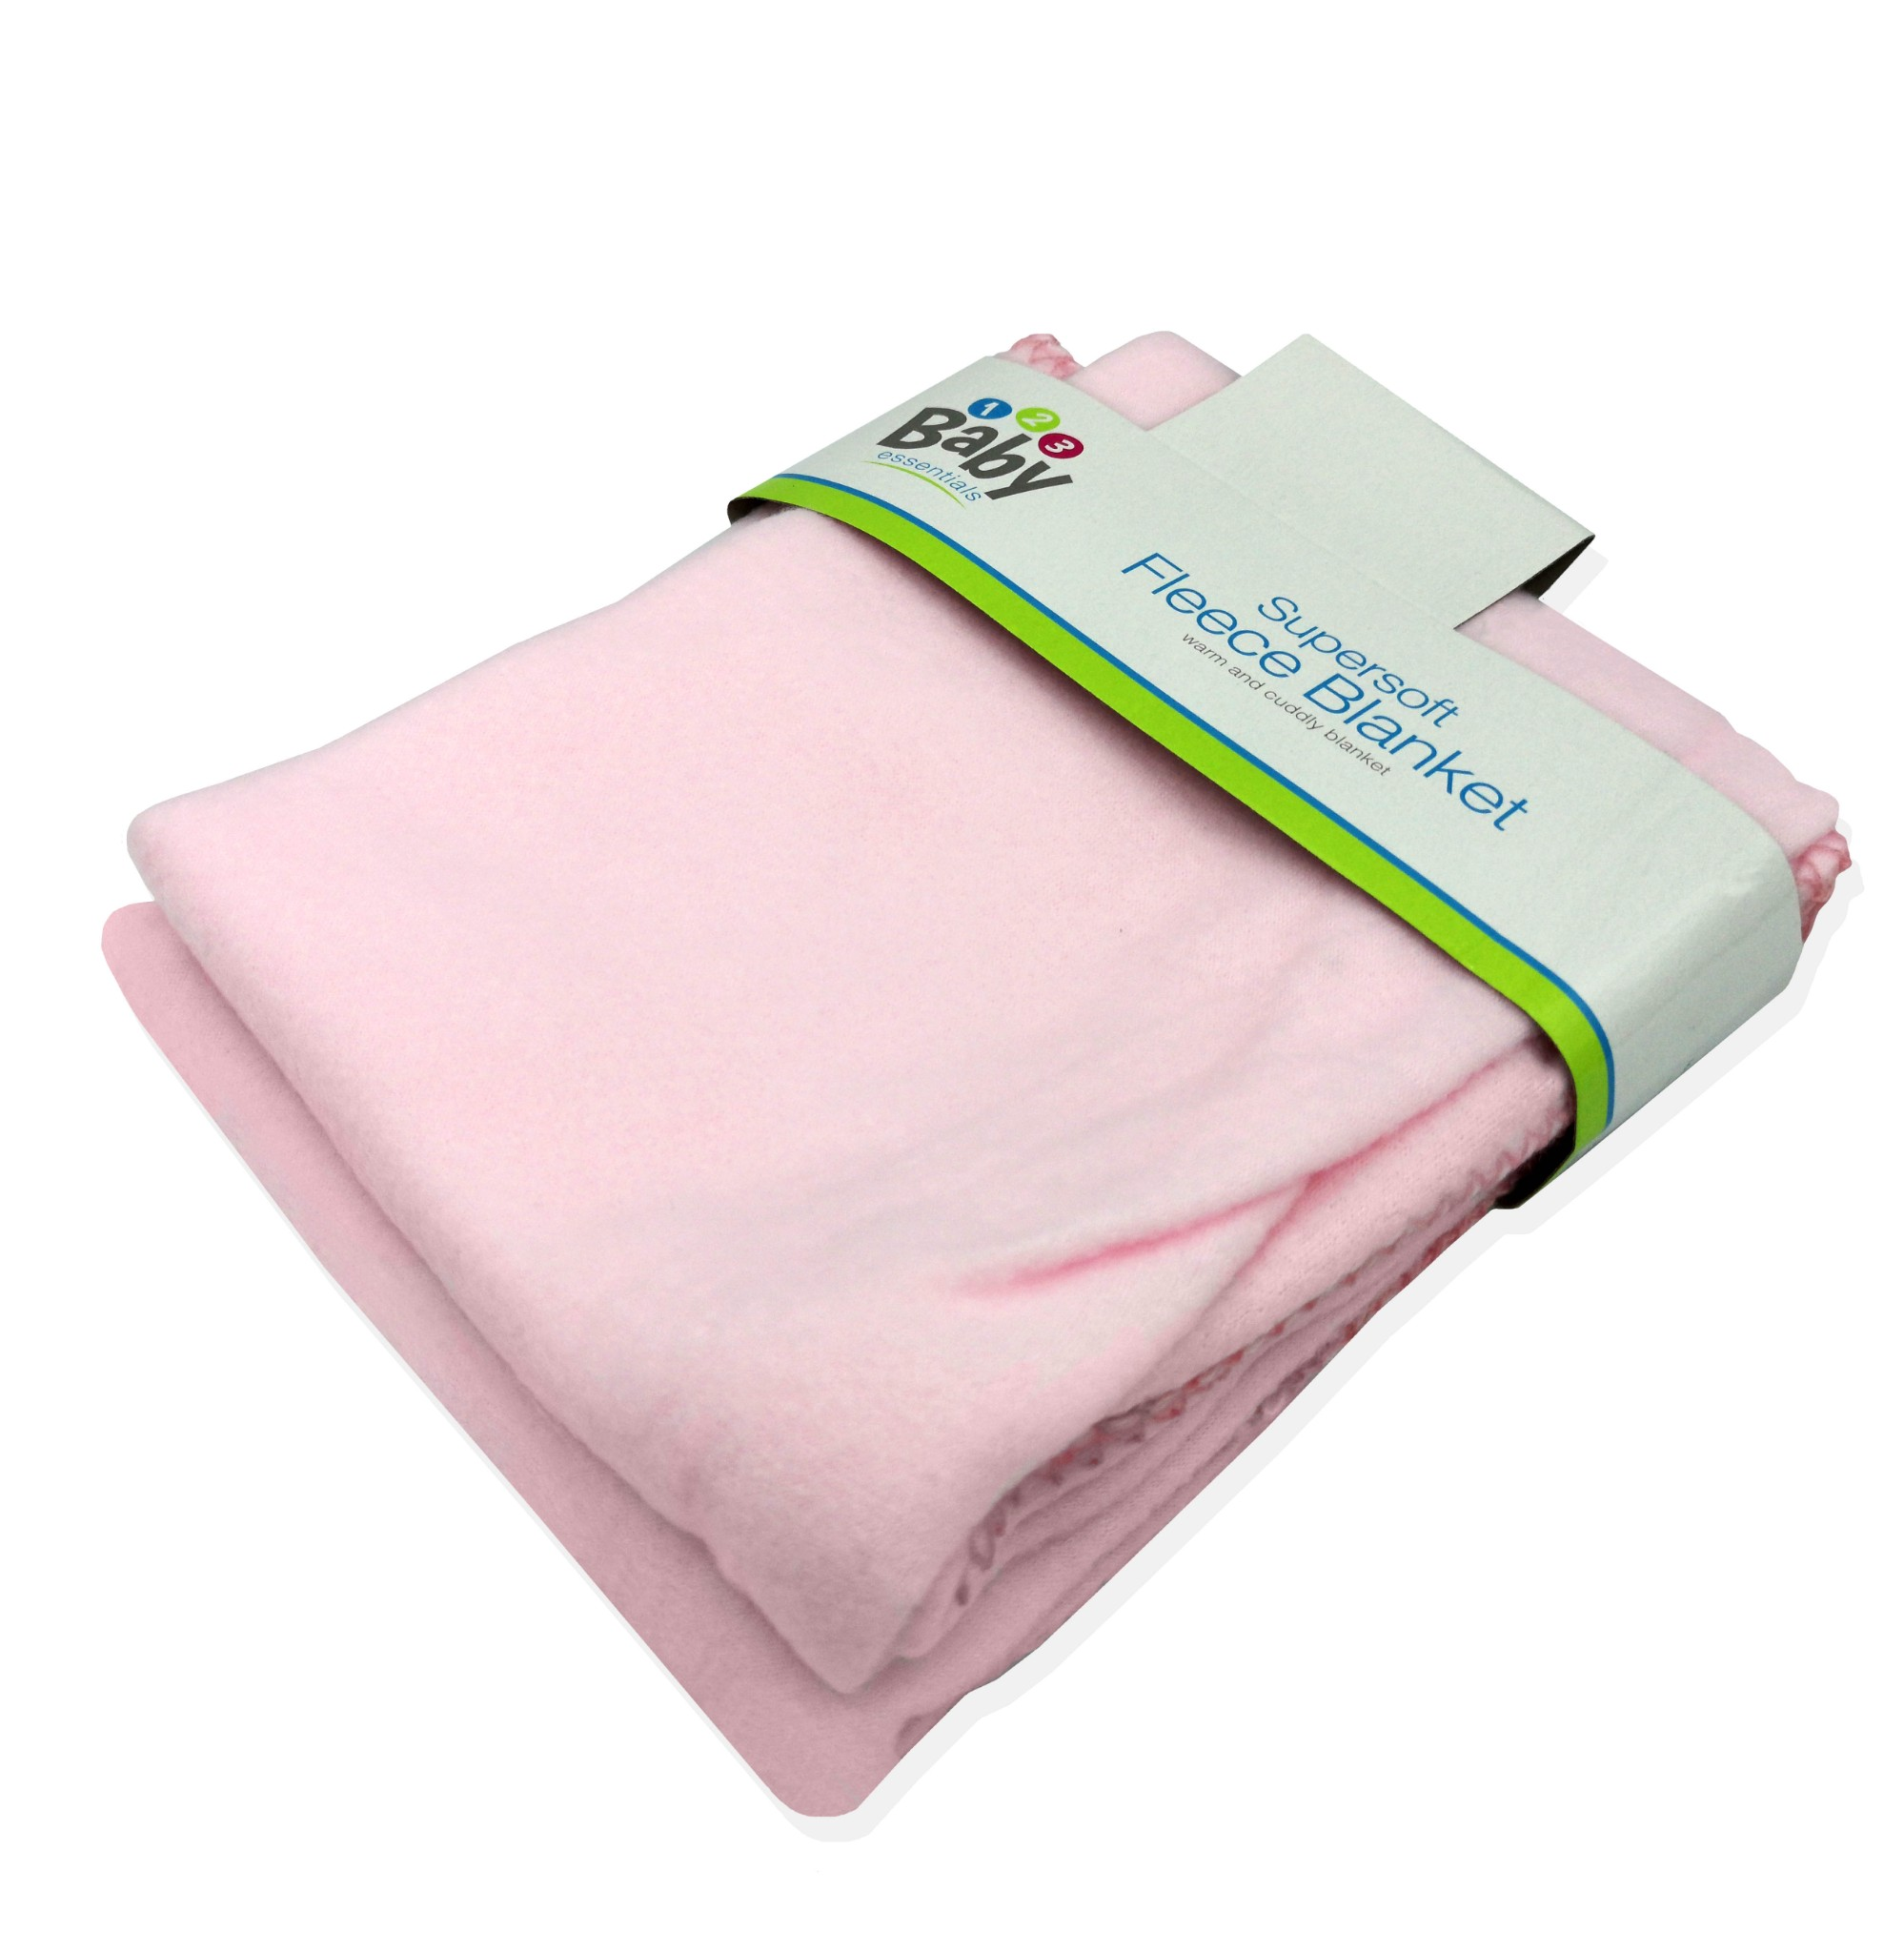 3 x Super Soft Fleece Blanket Wrap Baby Newborn Throw 70cmx70cm Blue White Pink